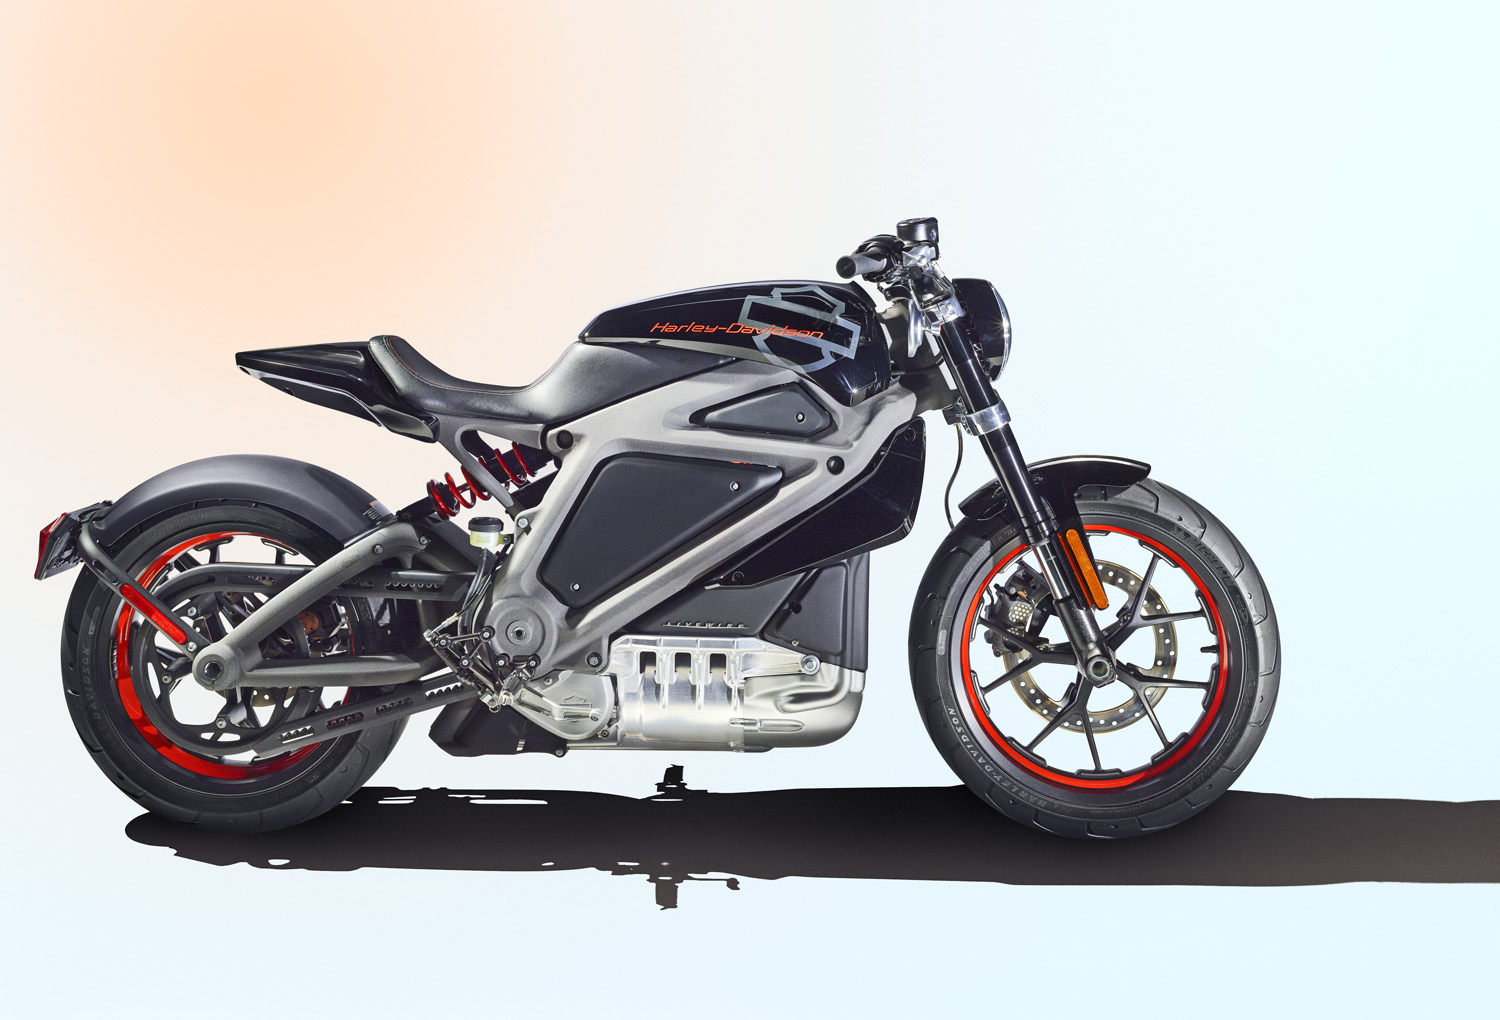 Profile full body photograph of Harley-Davidson's 2014 battery powered motorcycle, taken on June 5, 2014 at the Harley-Davidson headquarters in Milwaukee, WI.